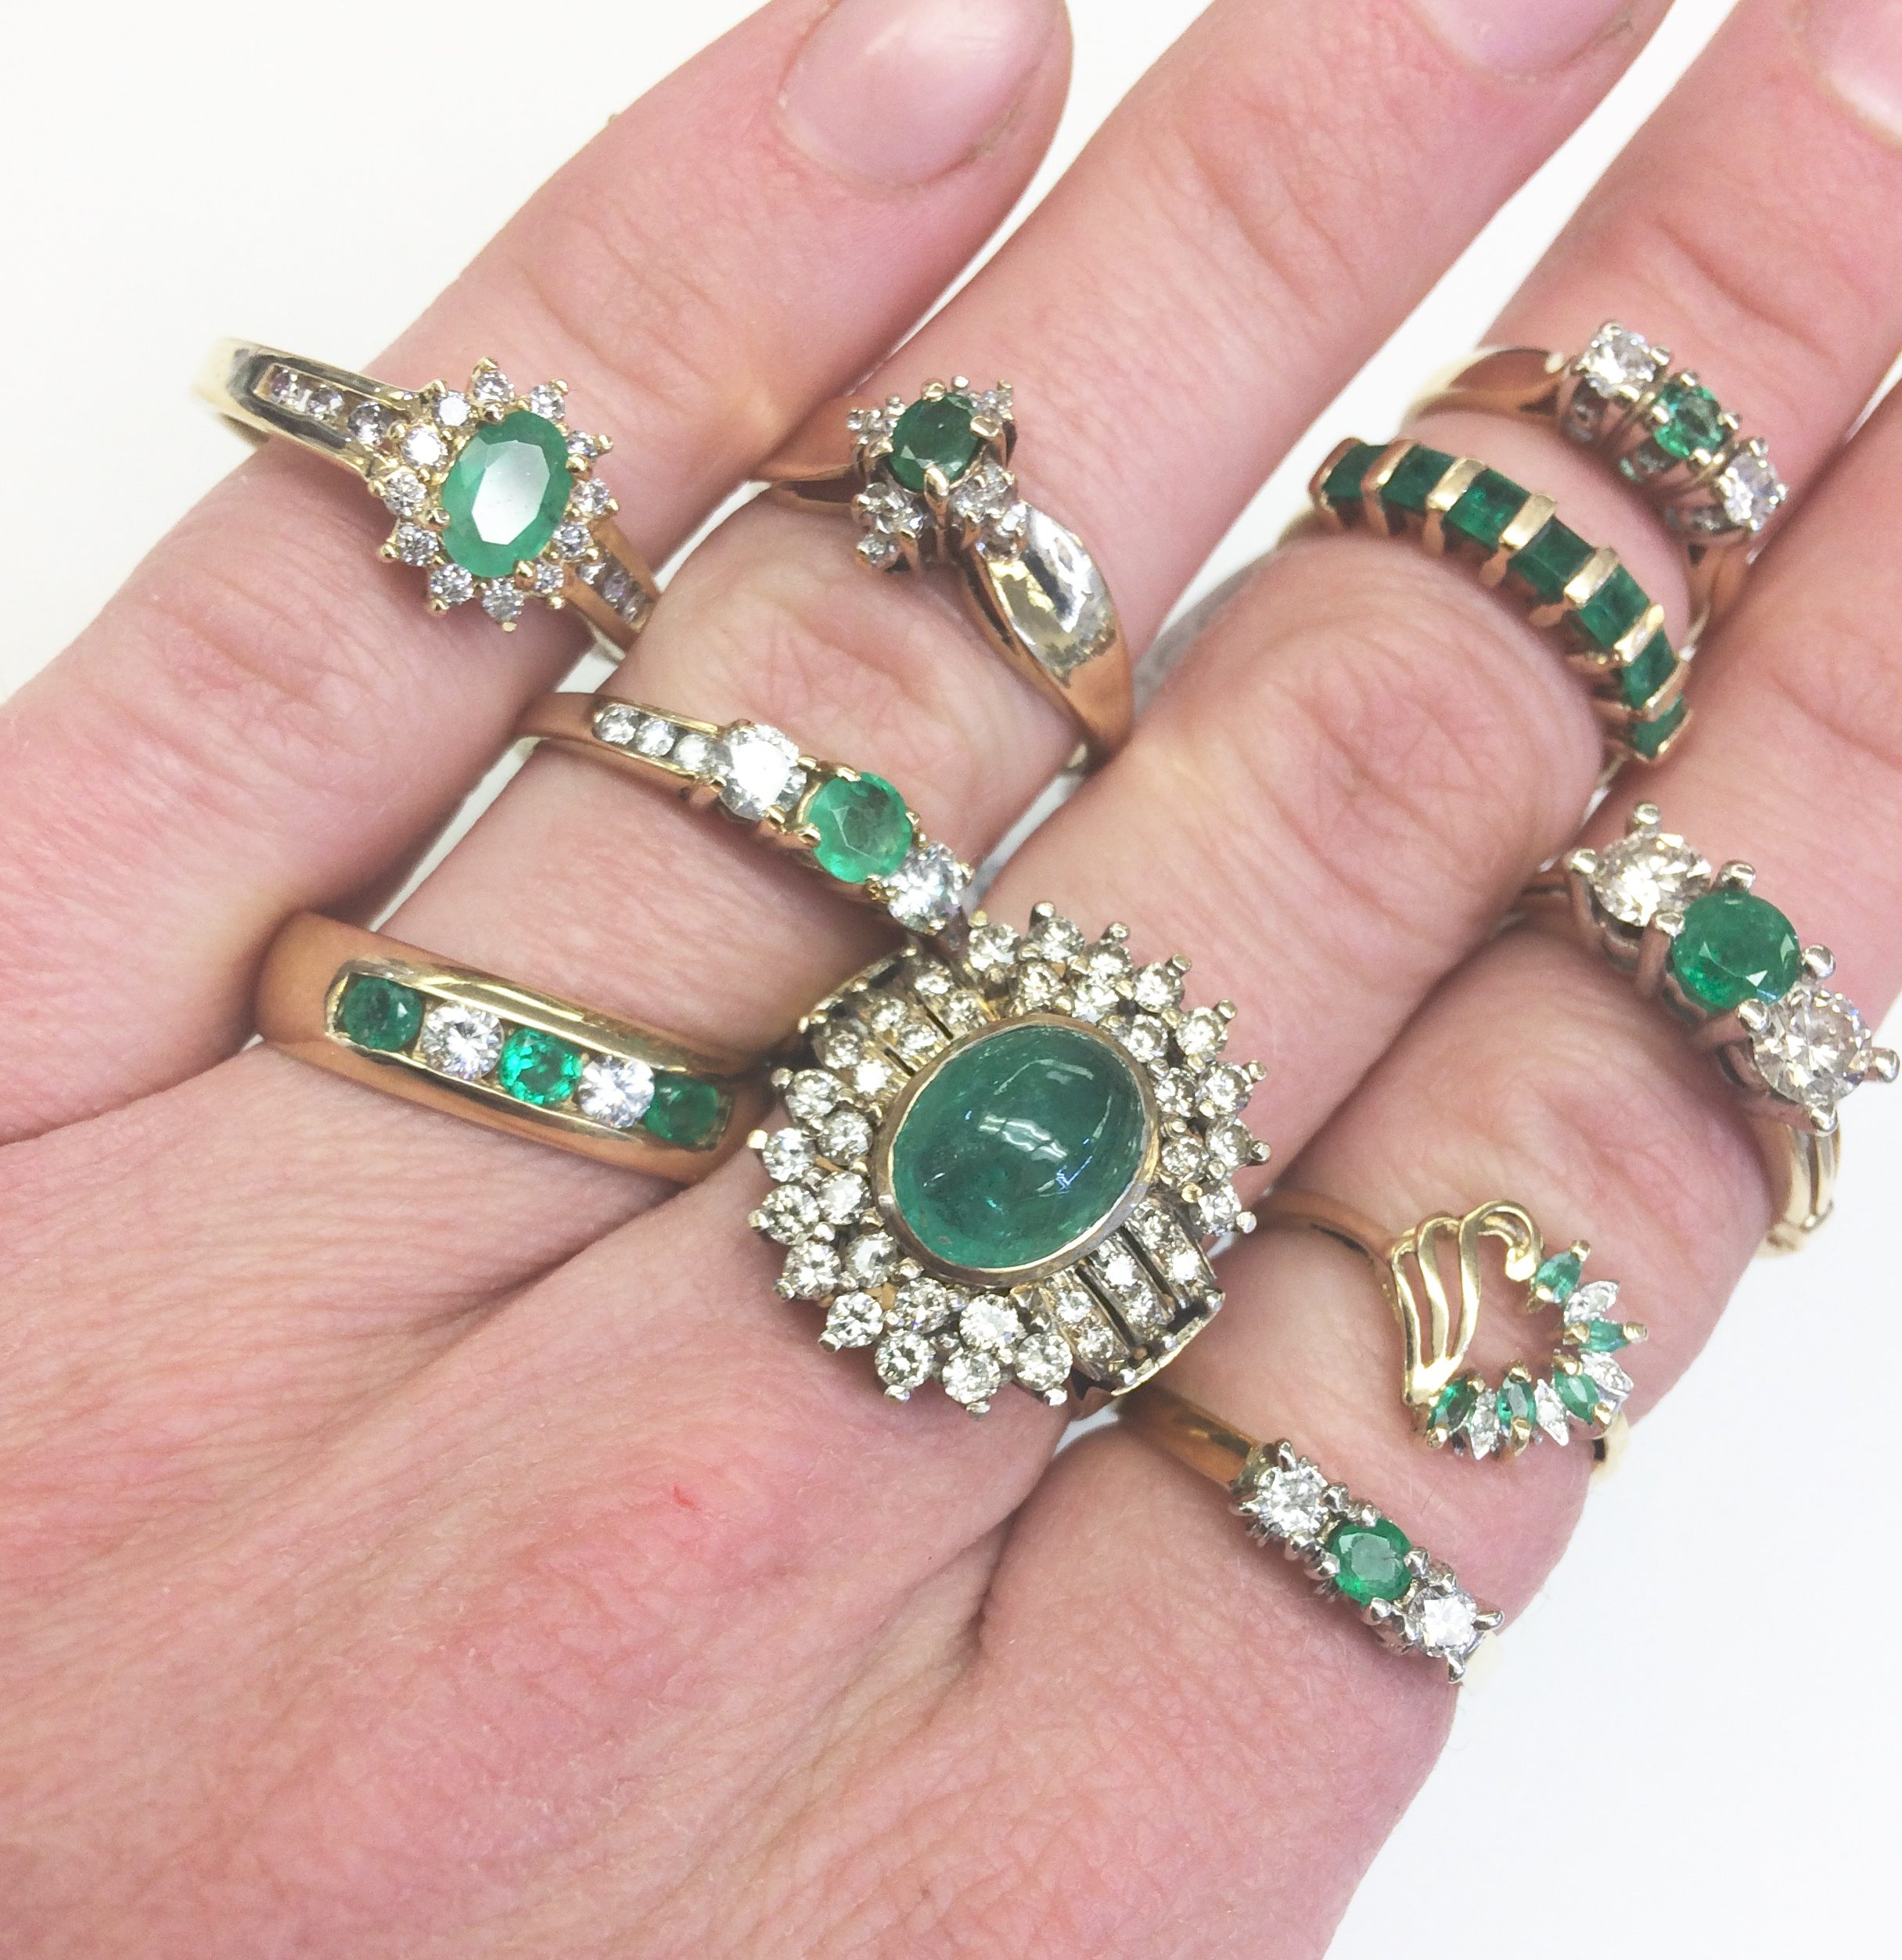 jewellery ring emerald may rings solid emrald birthstone stacking gold